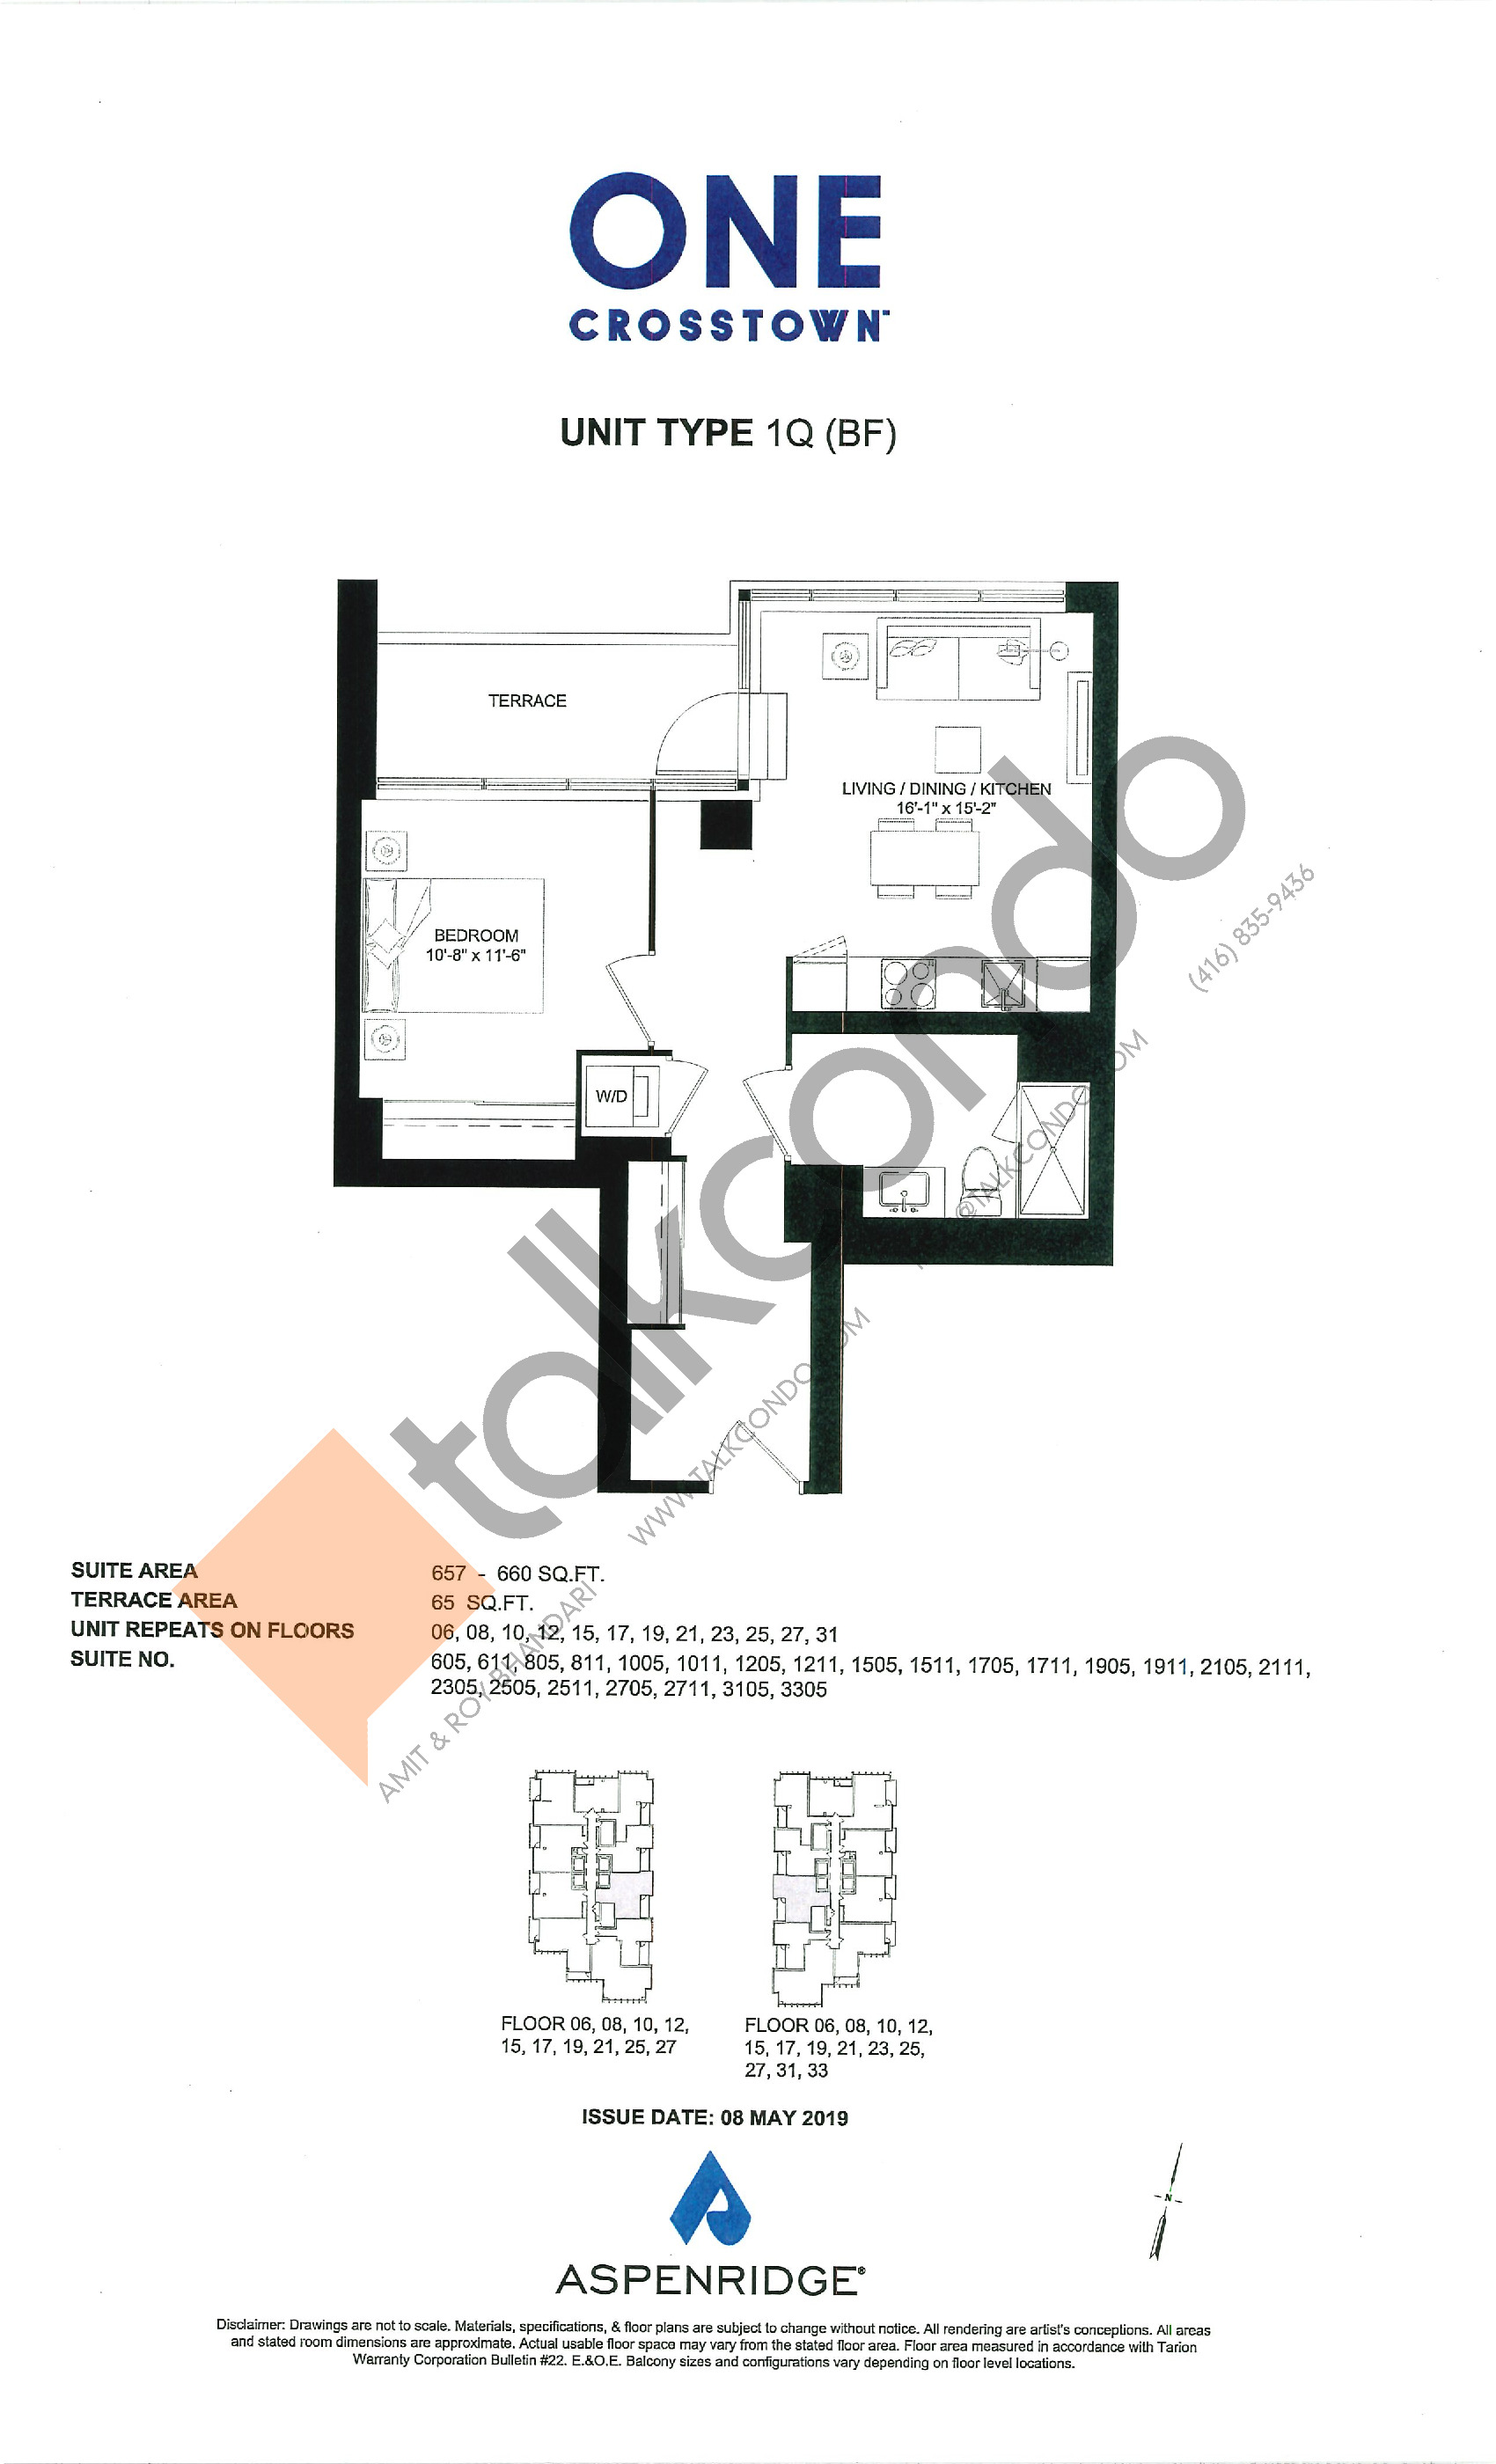 1Q (BF) Floor Plan at One Crosstown Condos - 660 sq.ft